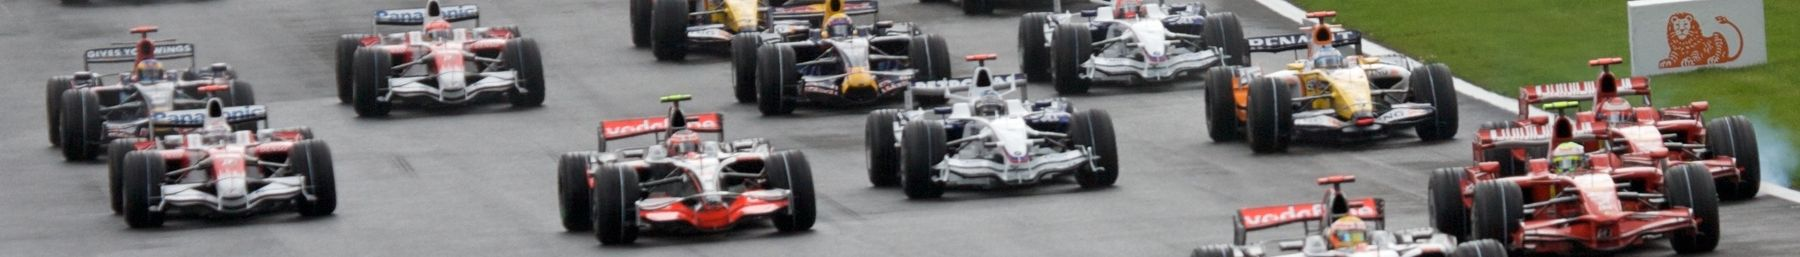 Formula One page banner.jpg